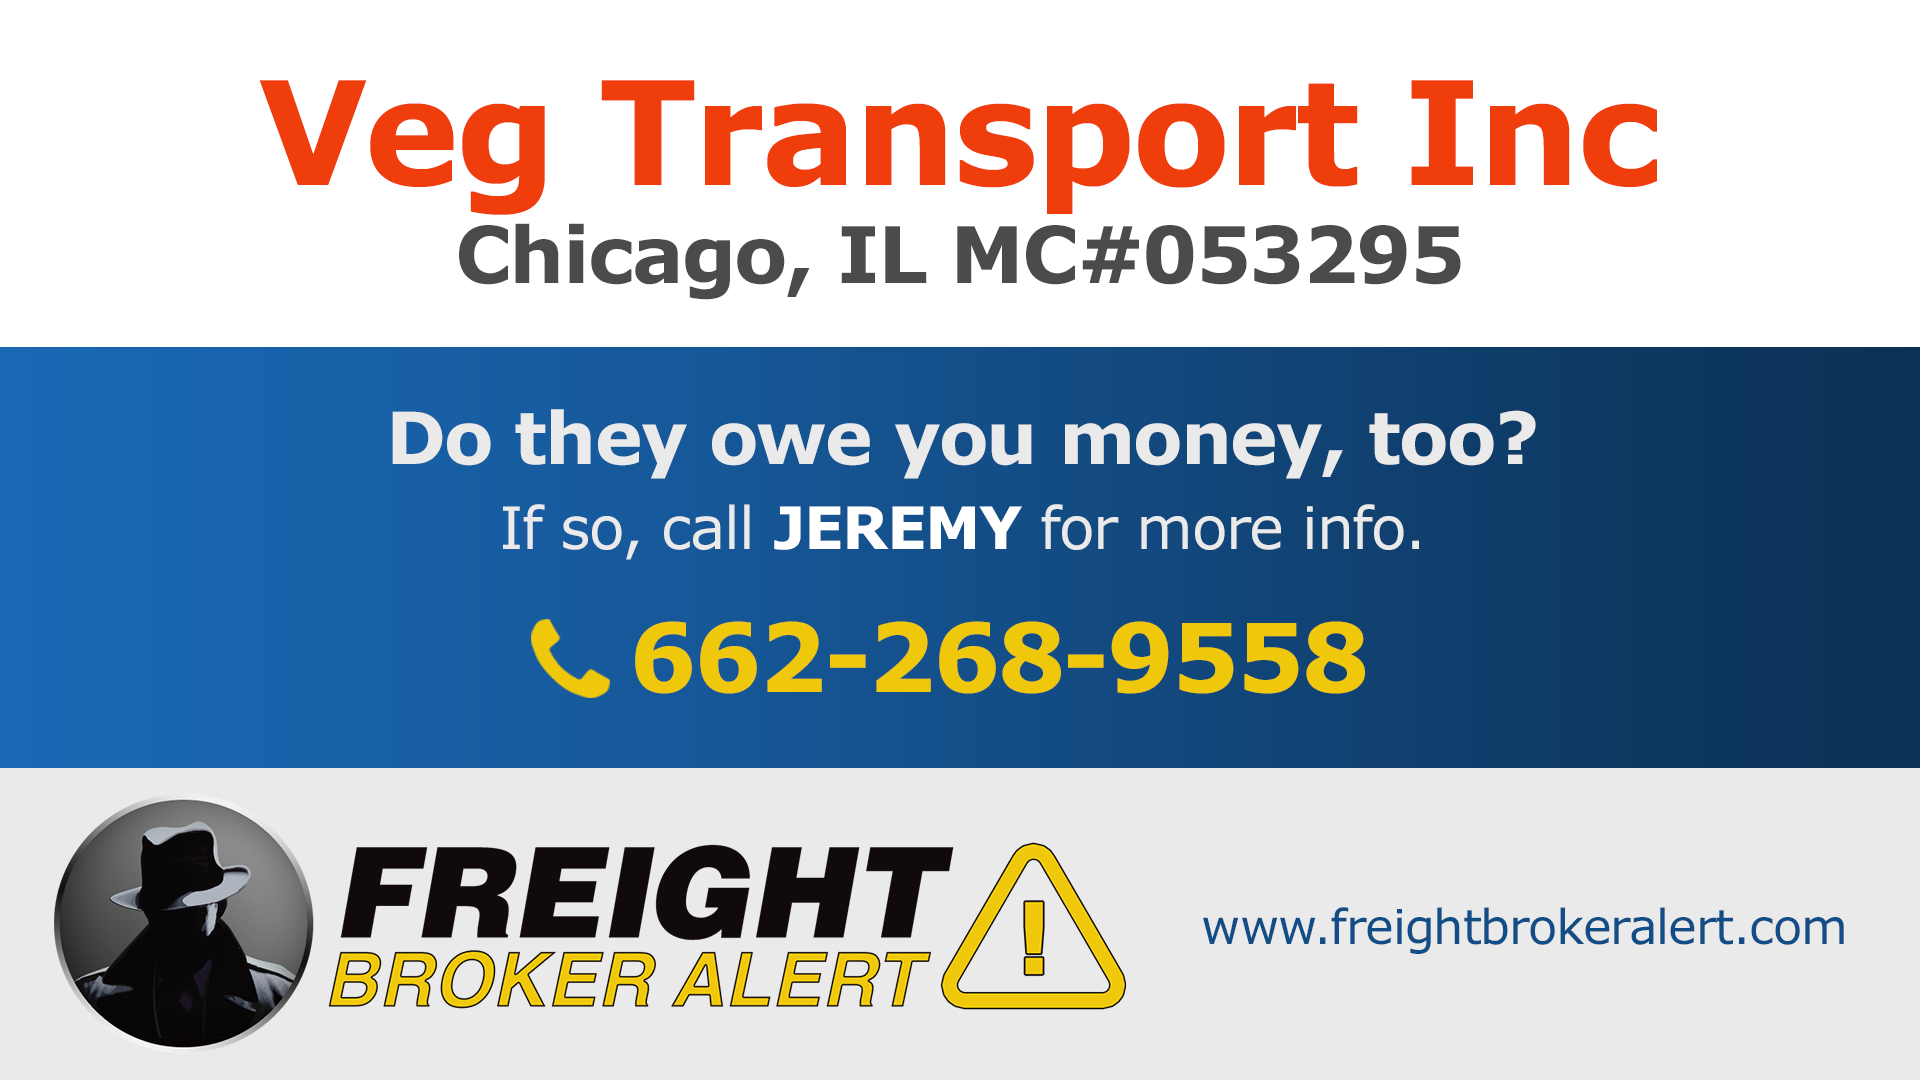 Veg Transport Inc Illinois